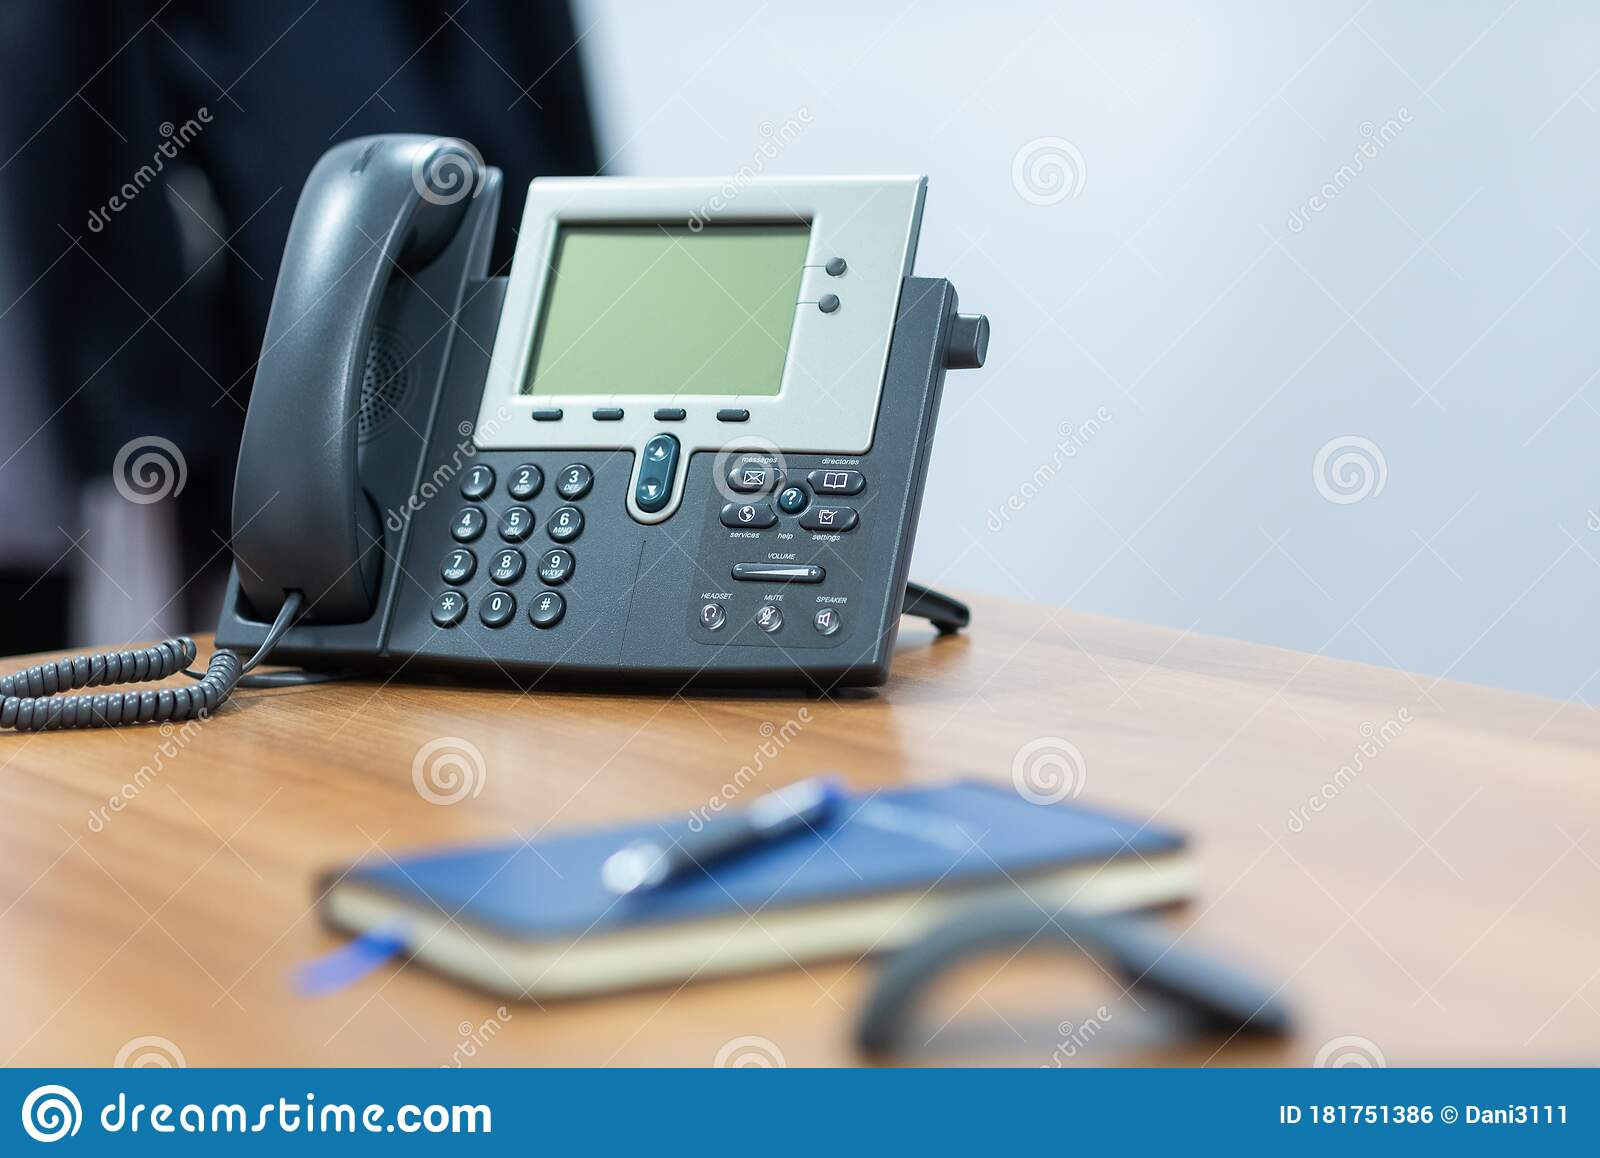 Grey Telephone In Office Desk Stock Photo Image Of Voip Keypad 181751386